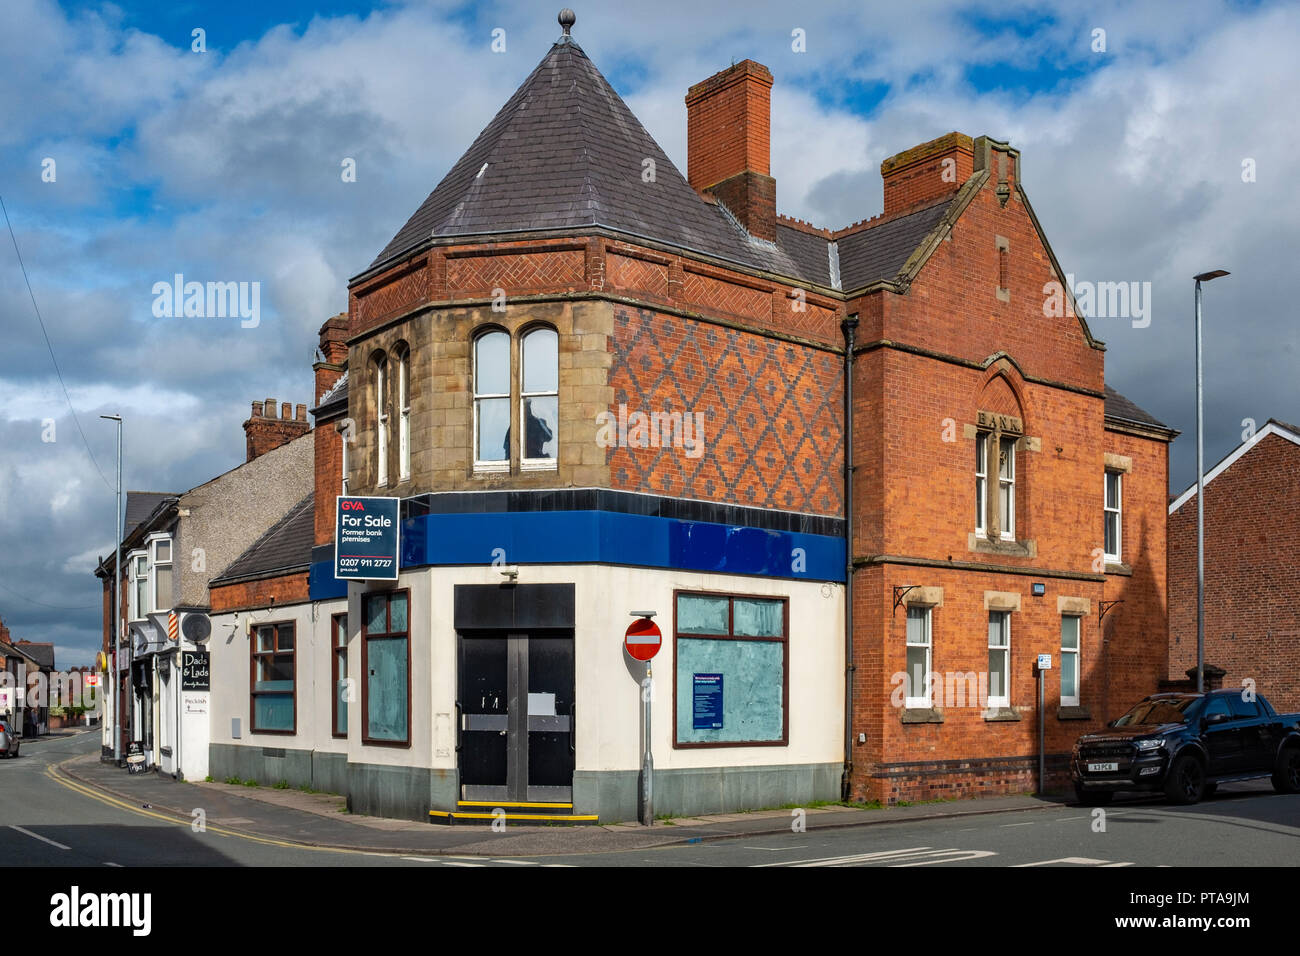 Former Royal Bank of Scotland closed down and for sale September 2018 in Sandbach Cheshire UK - Stock Image